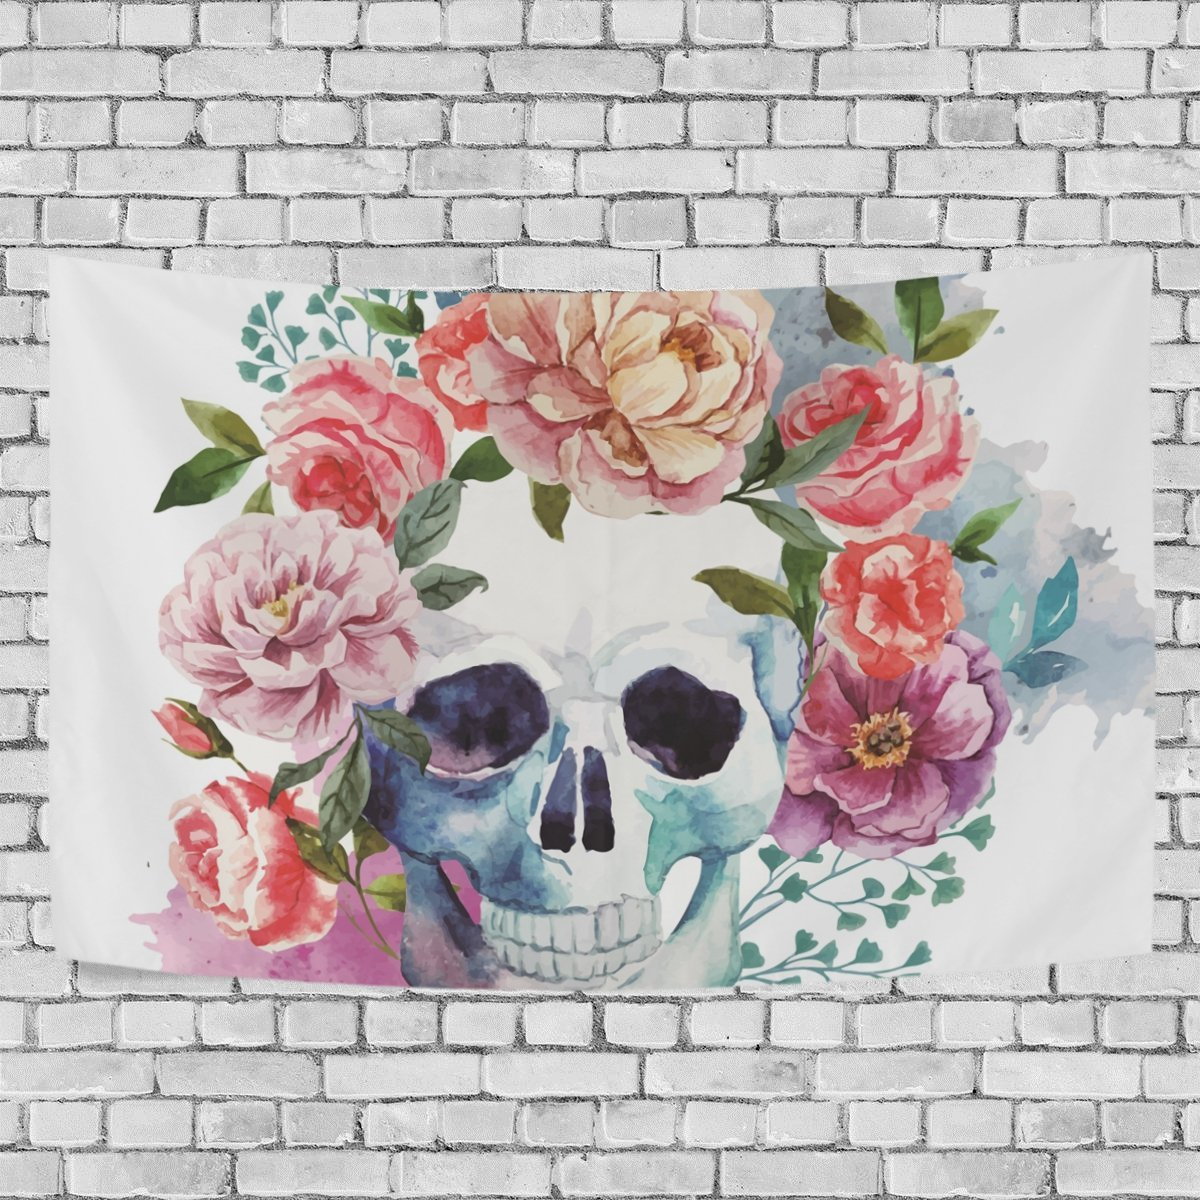 MYPOP Skull Flower Tapestry Wall Decor Living Room Dorm Tapestries DIY 80 x 60 inches